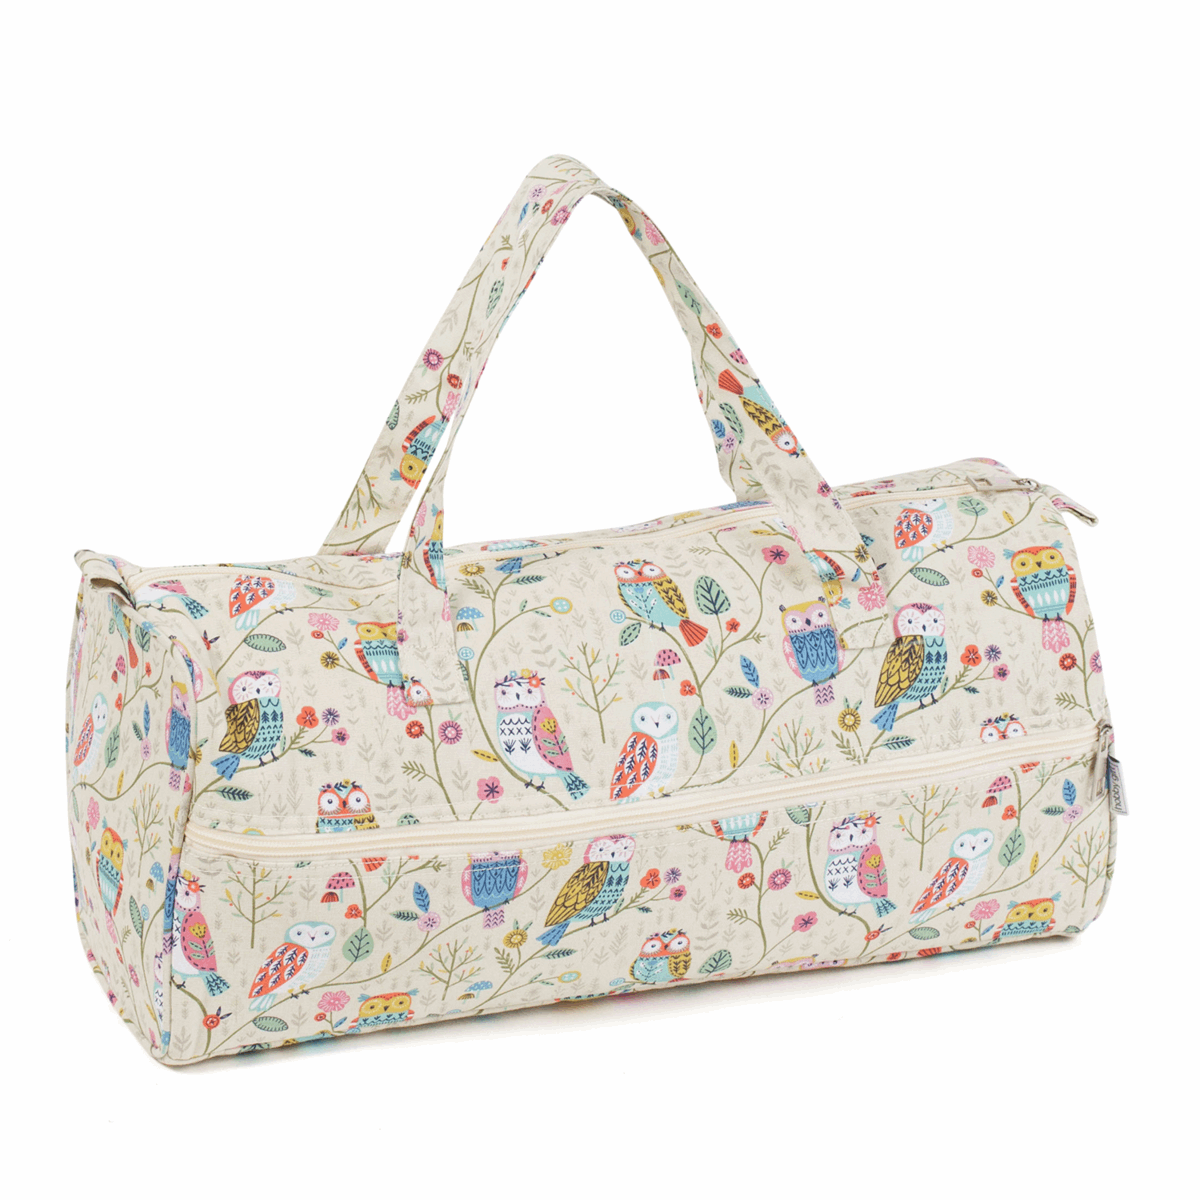 Picture of Knitting Bag: Twit Twoo: Pack of 3